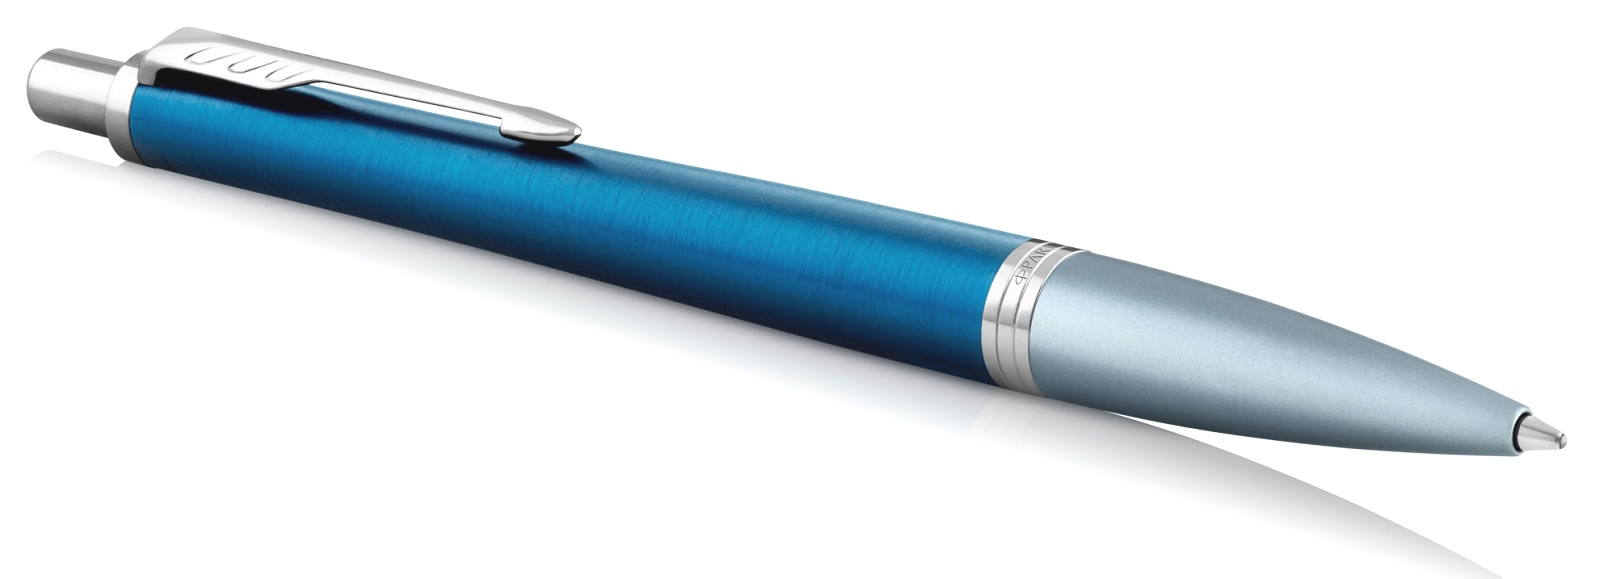 Ручка шариковая Parker Urban Premium K310, Dark Blue CT, фото 2